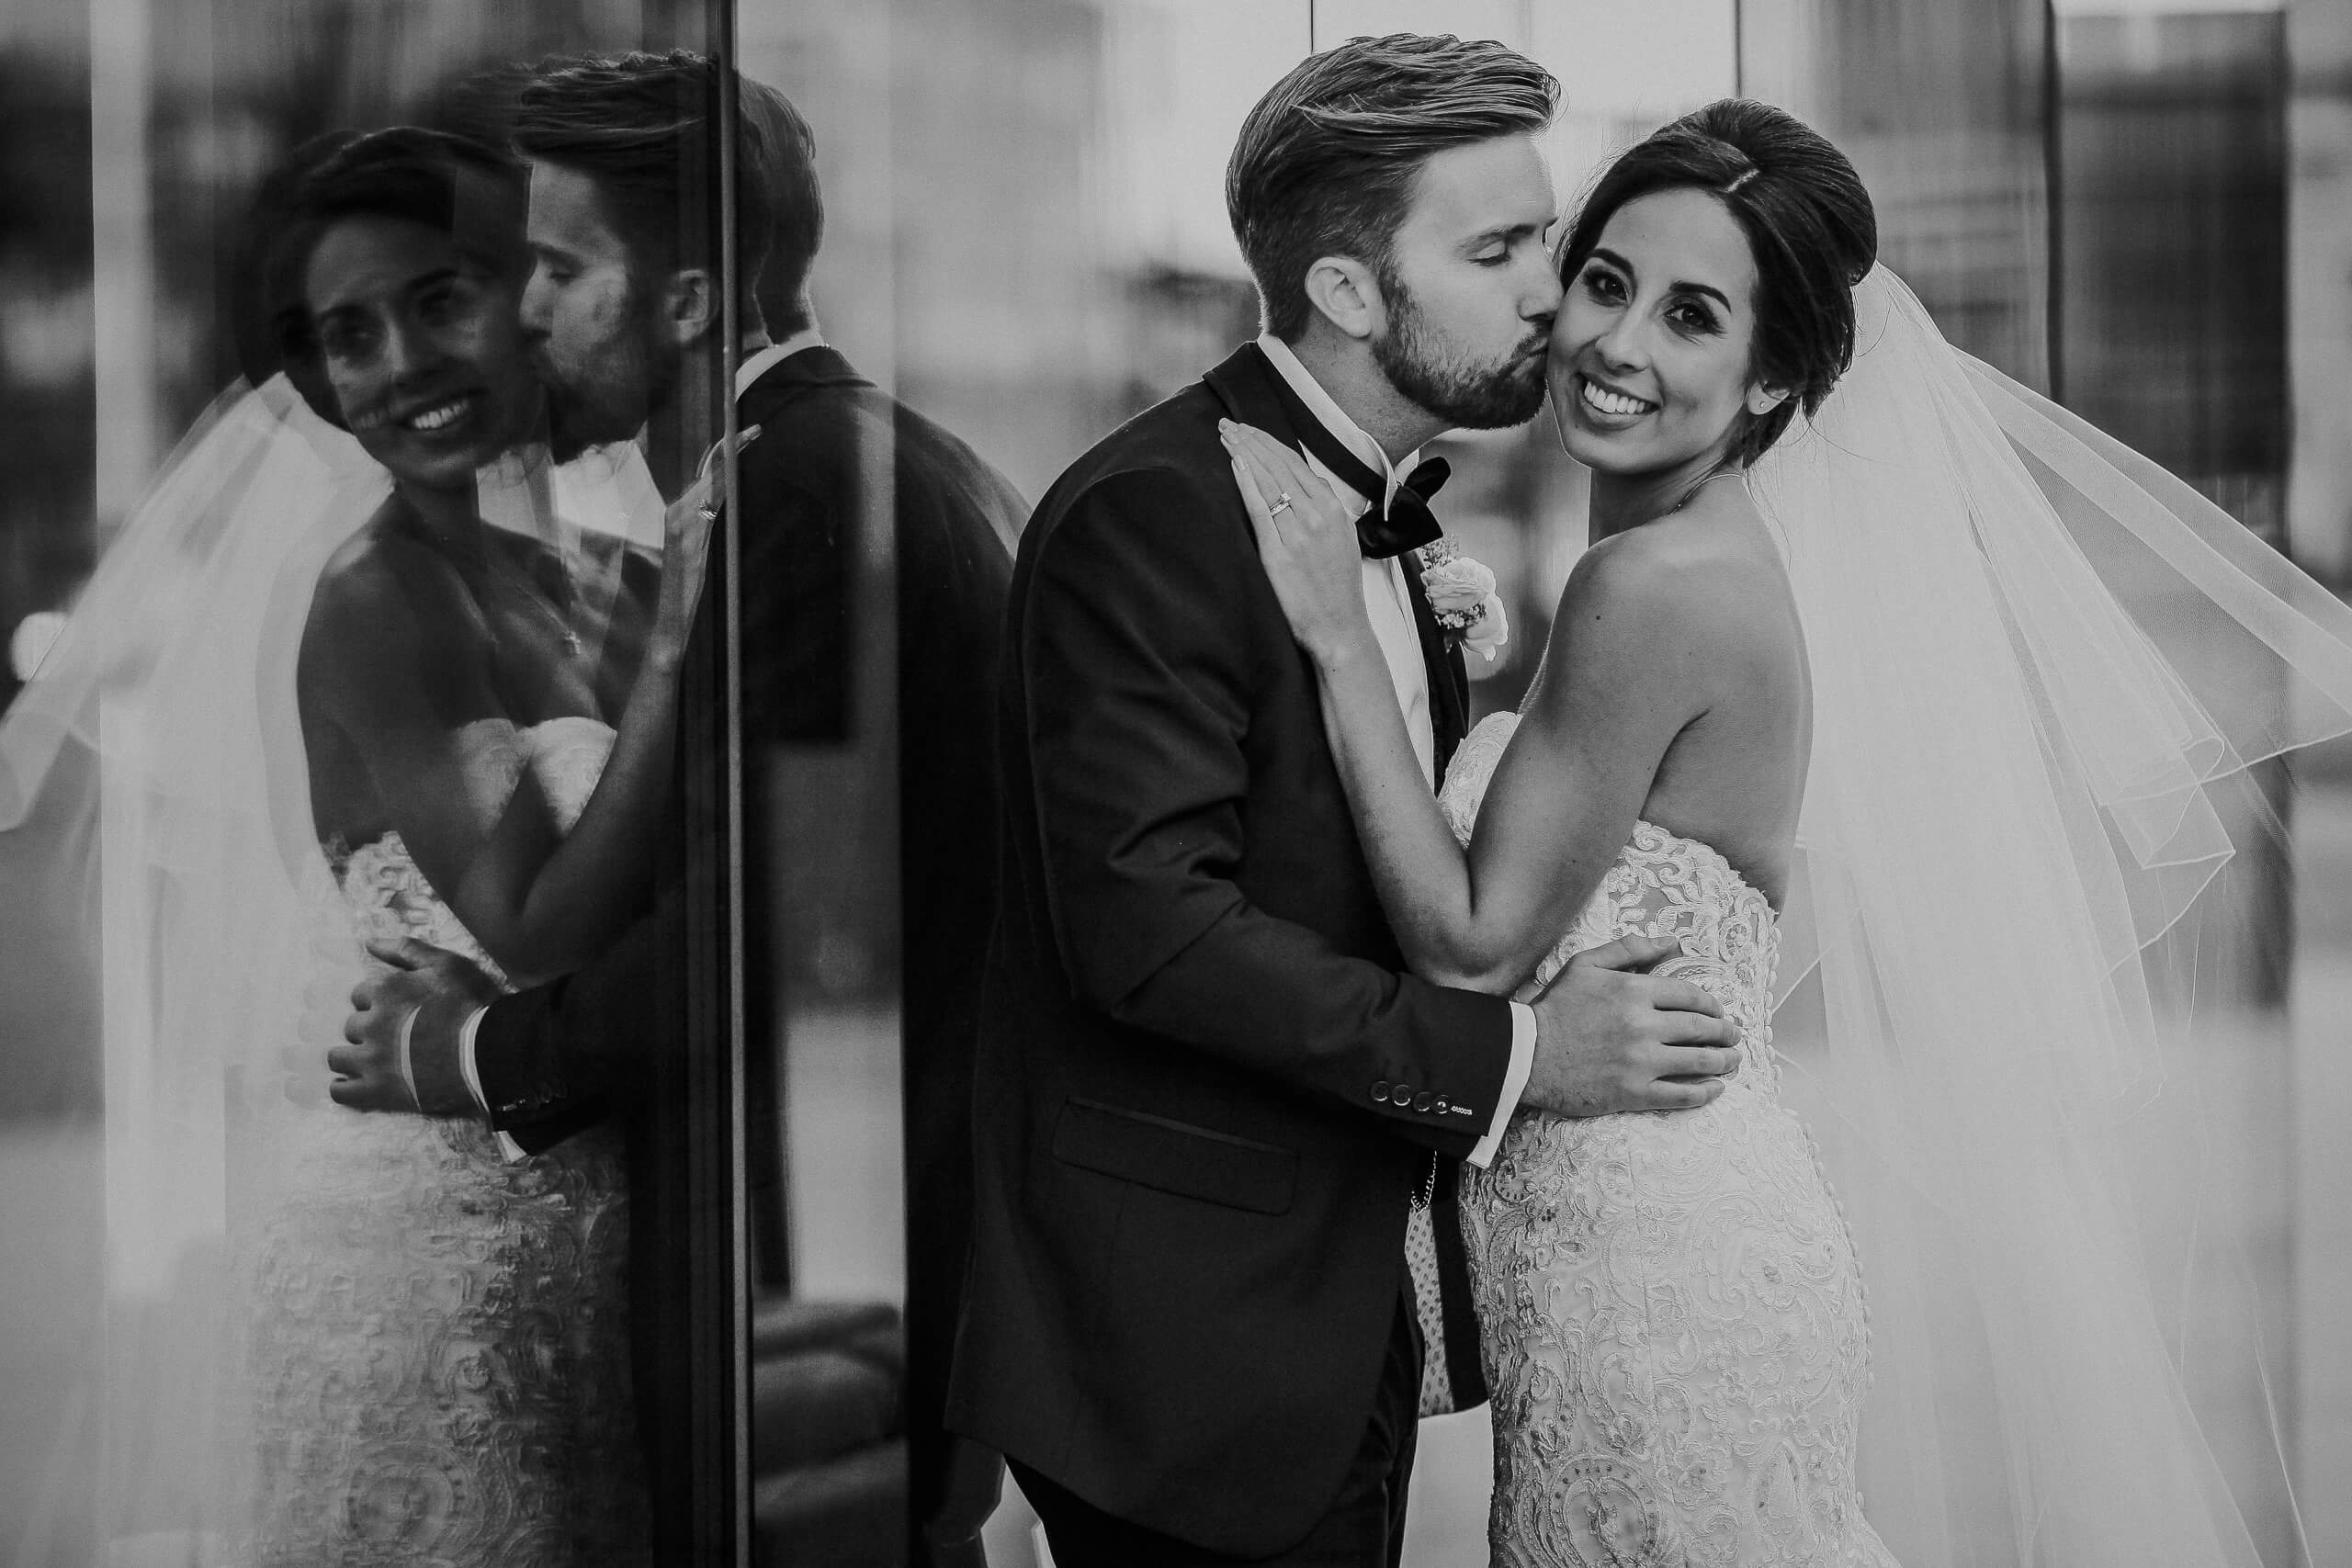 Cool black and white portrait of bride and groom with reflection 30 James Street Liverpool wedding photography